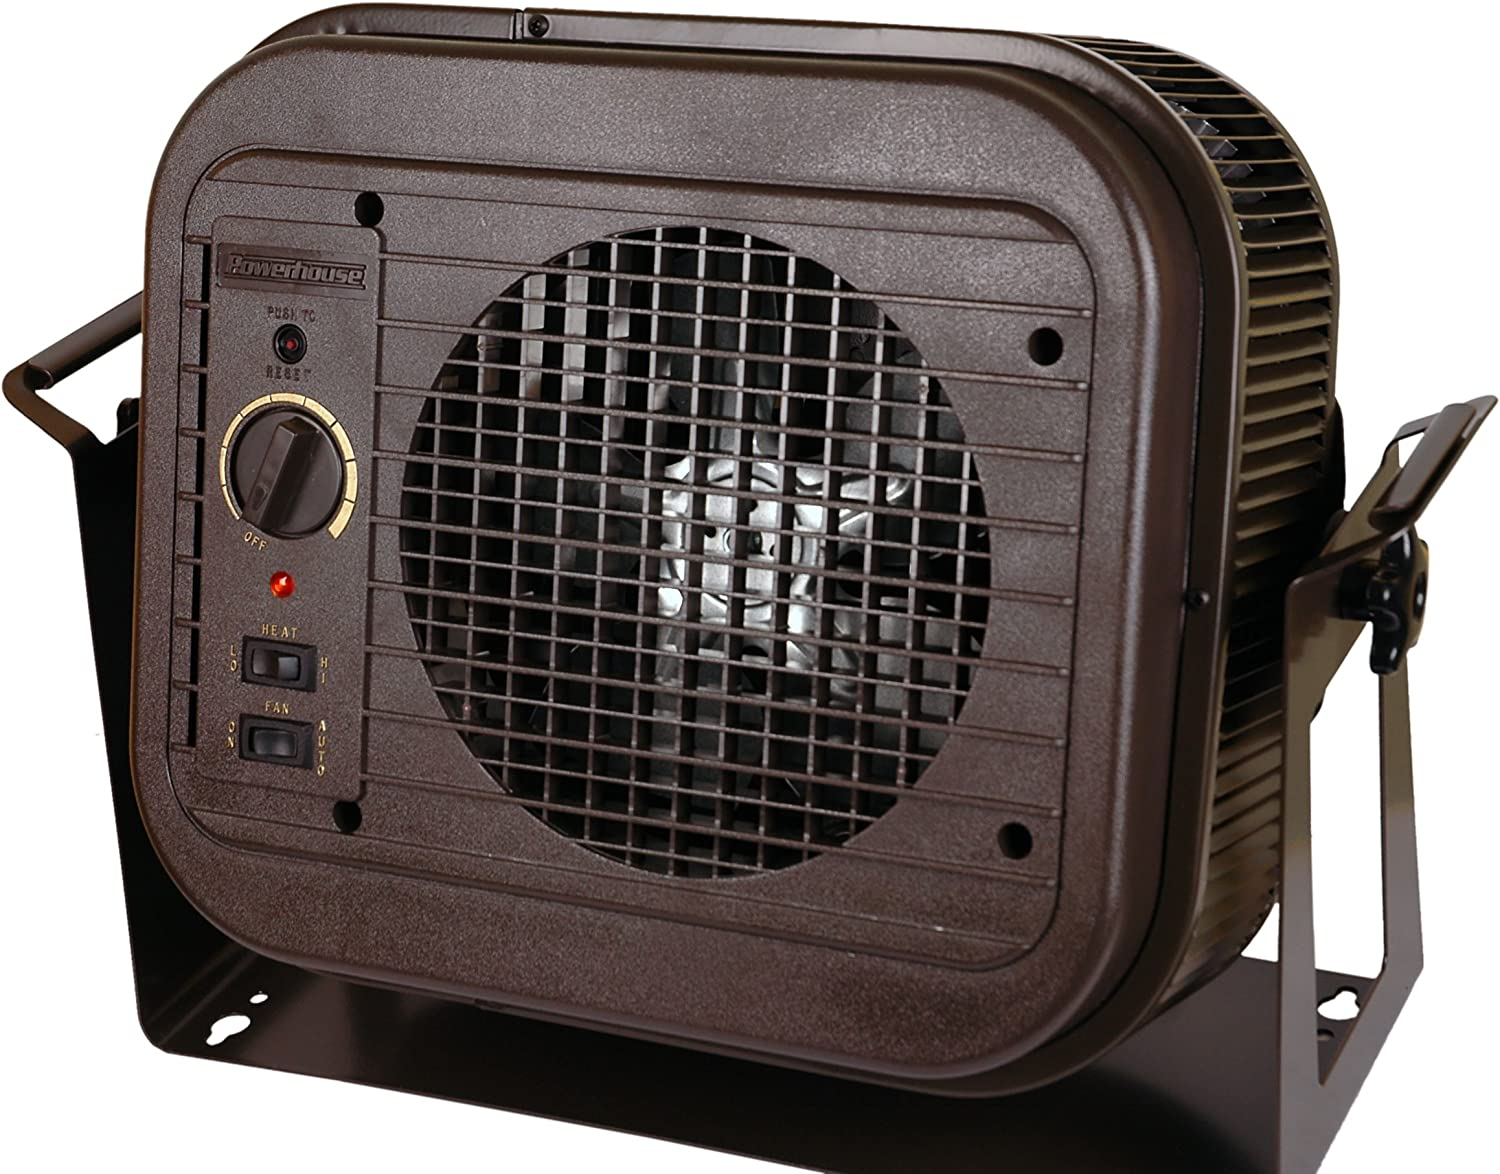 Marley MUH35 Qmark Electric Commercial Unit Heater